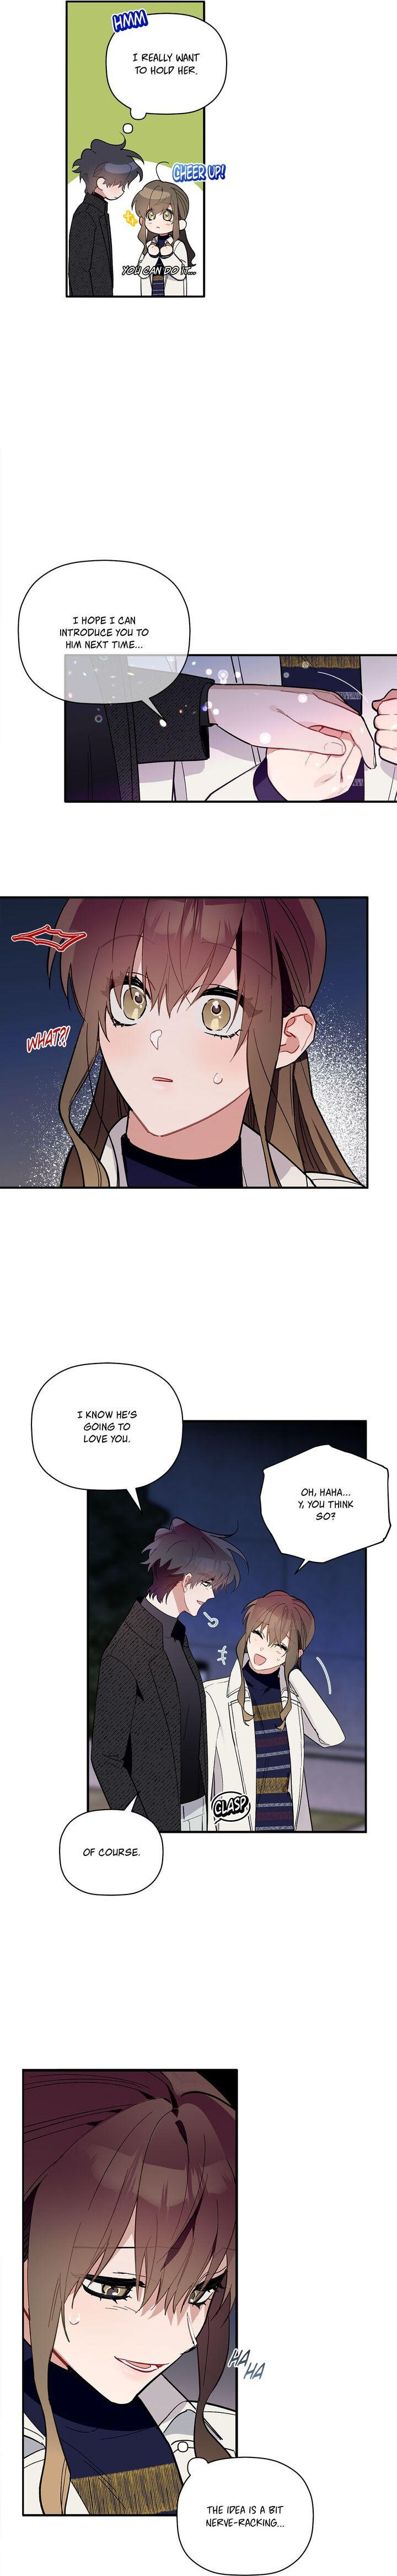 Give Me A Flower, And I'Ll Give You All Of Me Chapter 51 page 11 - Mangakakalots.com